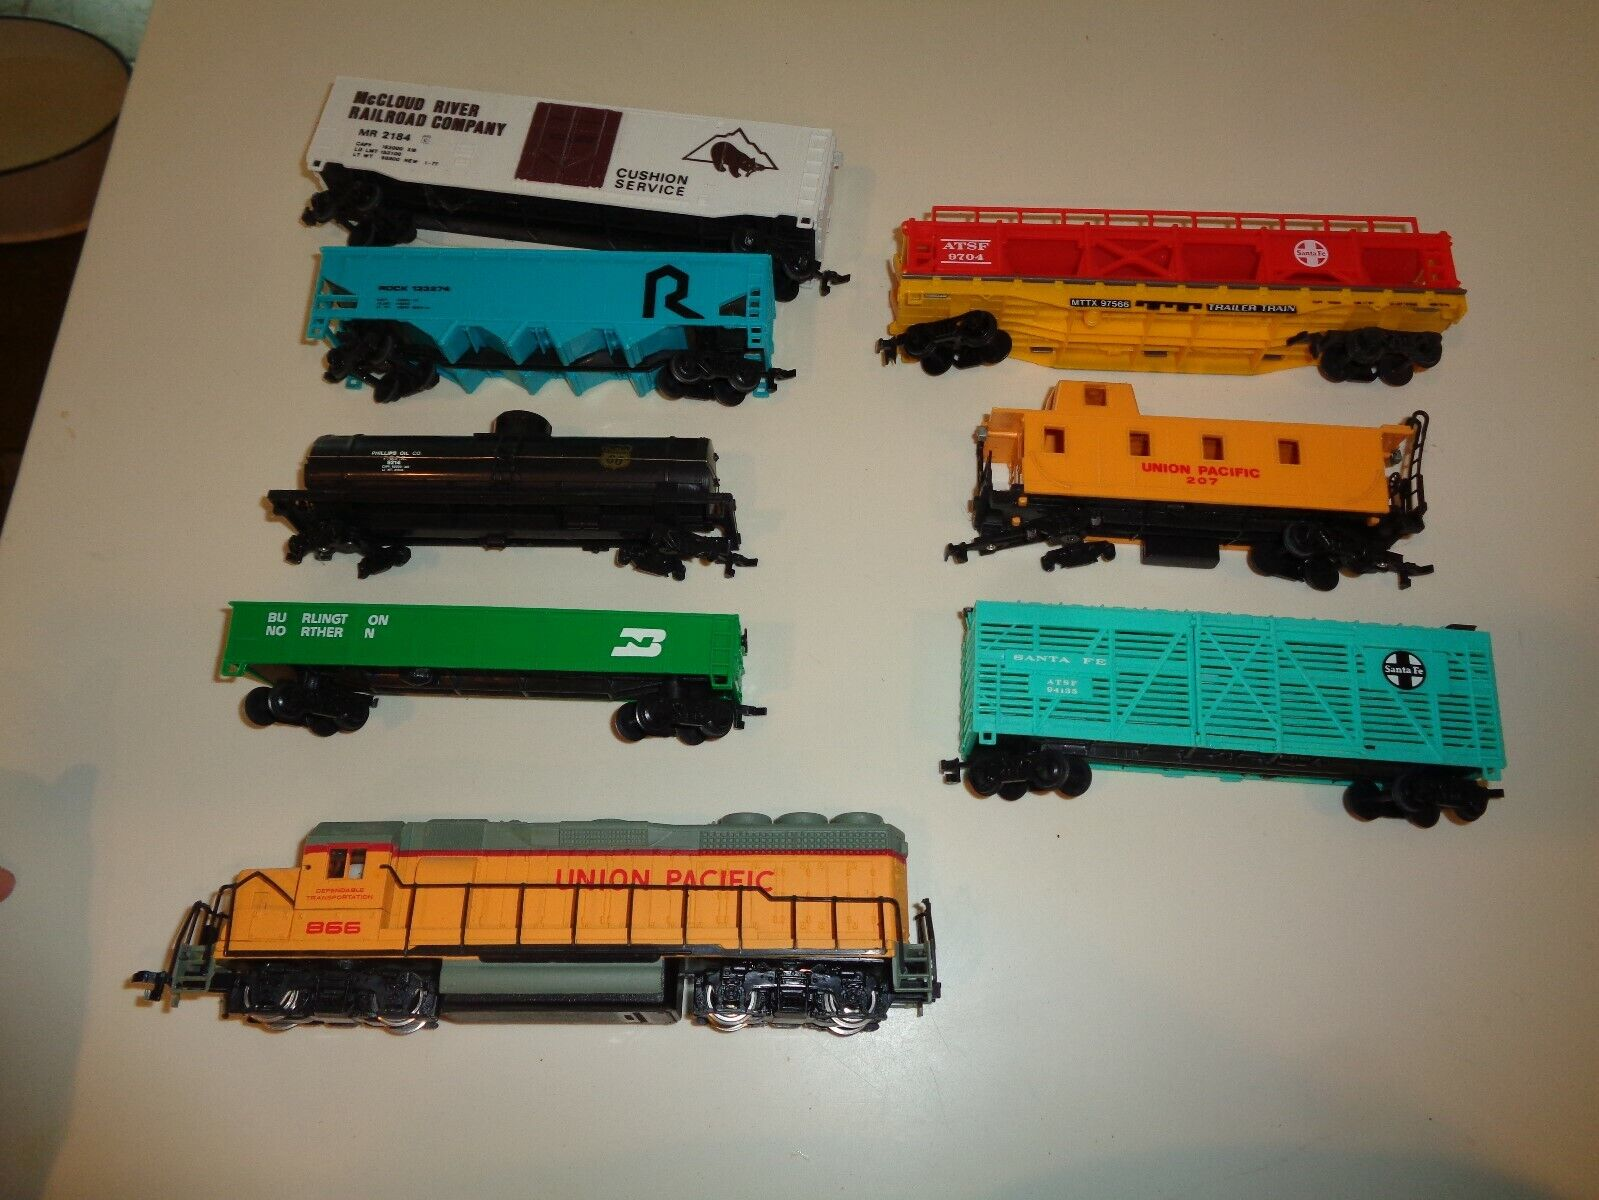 Bachuomon HO Scale Union Pacific Diesel Diesel Diesel Train Set giocattolo Gift Pre-Owned 8 autos f732e9